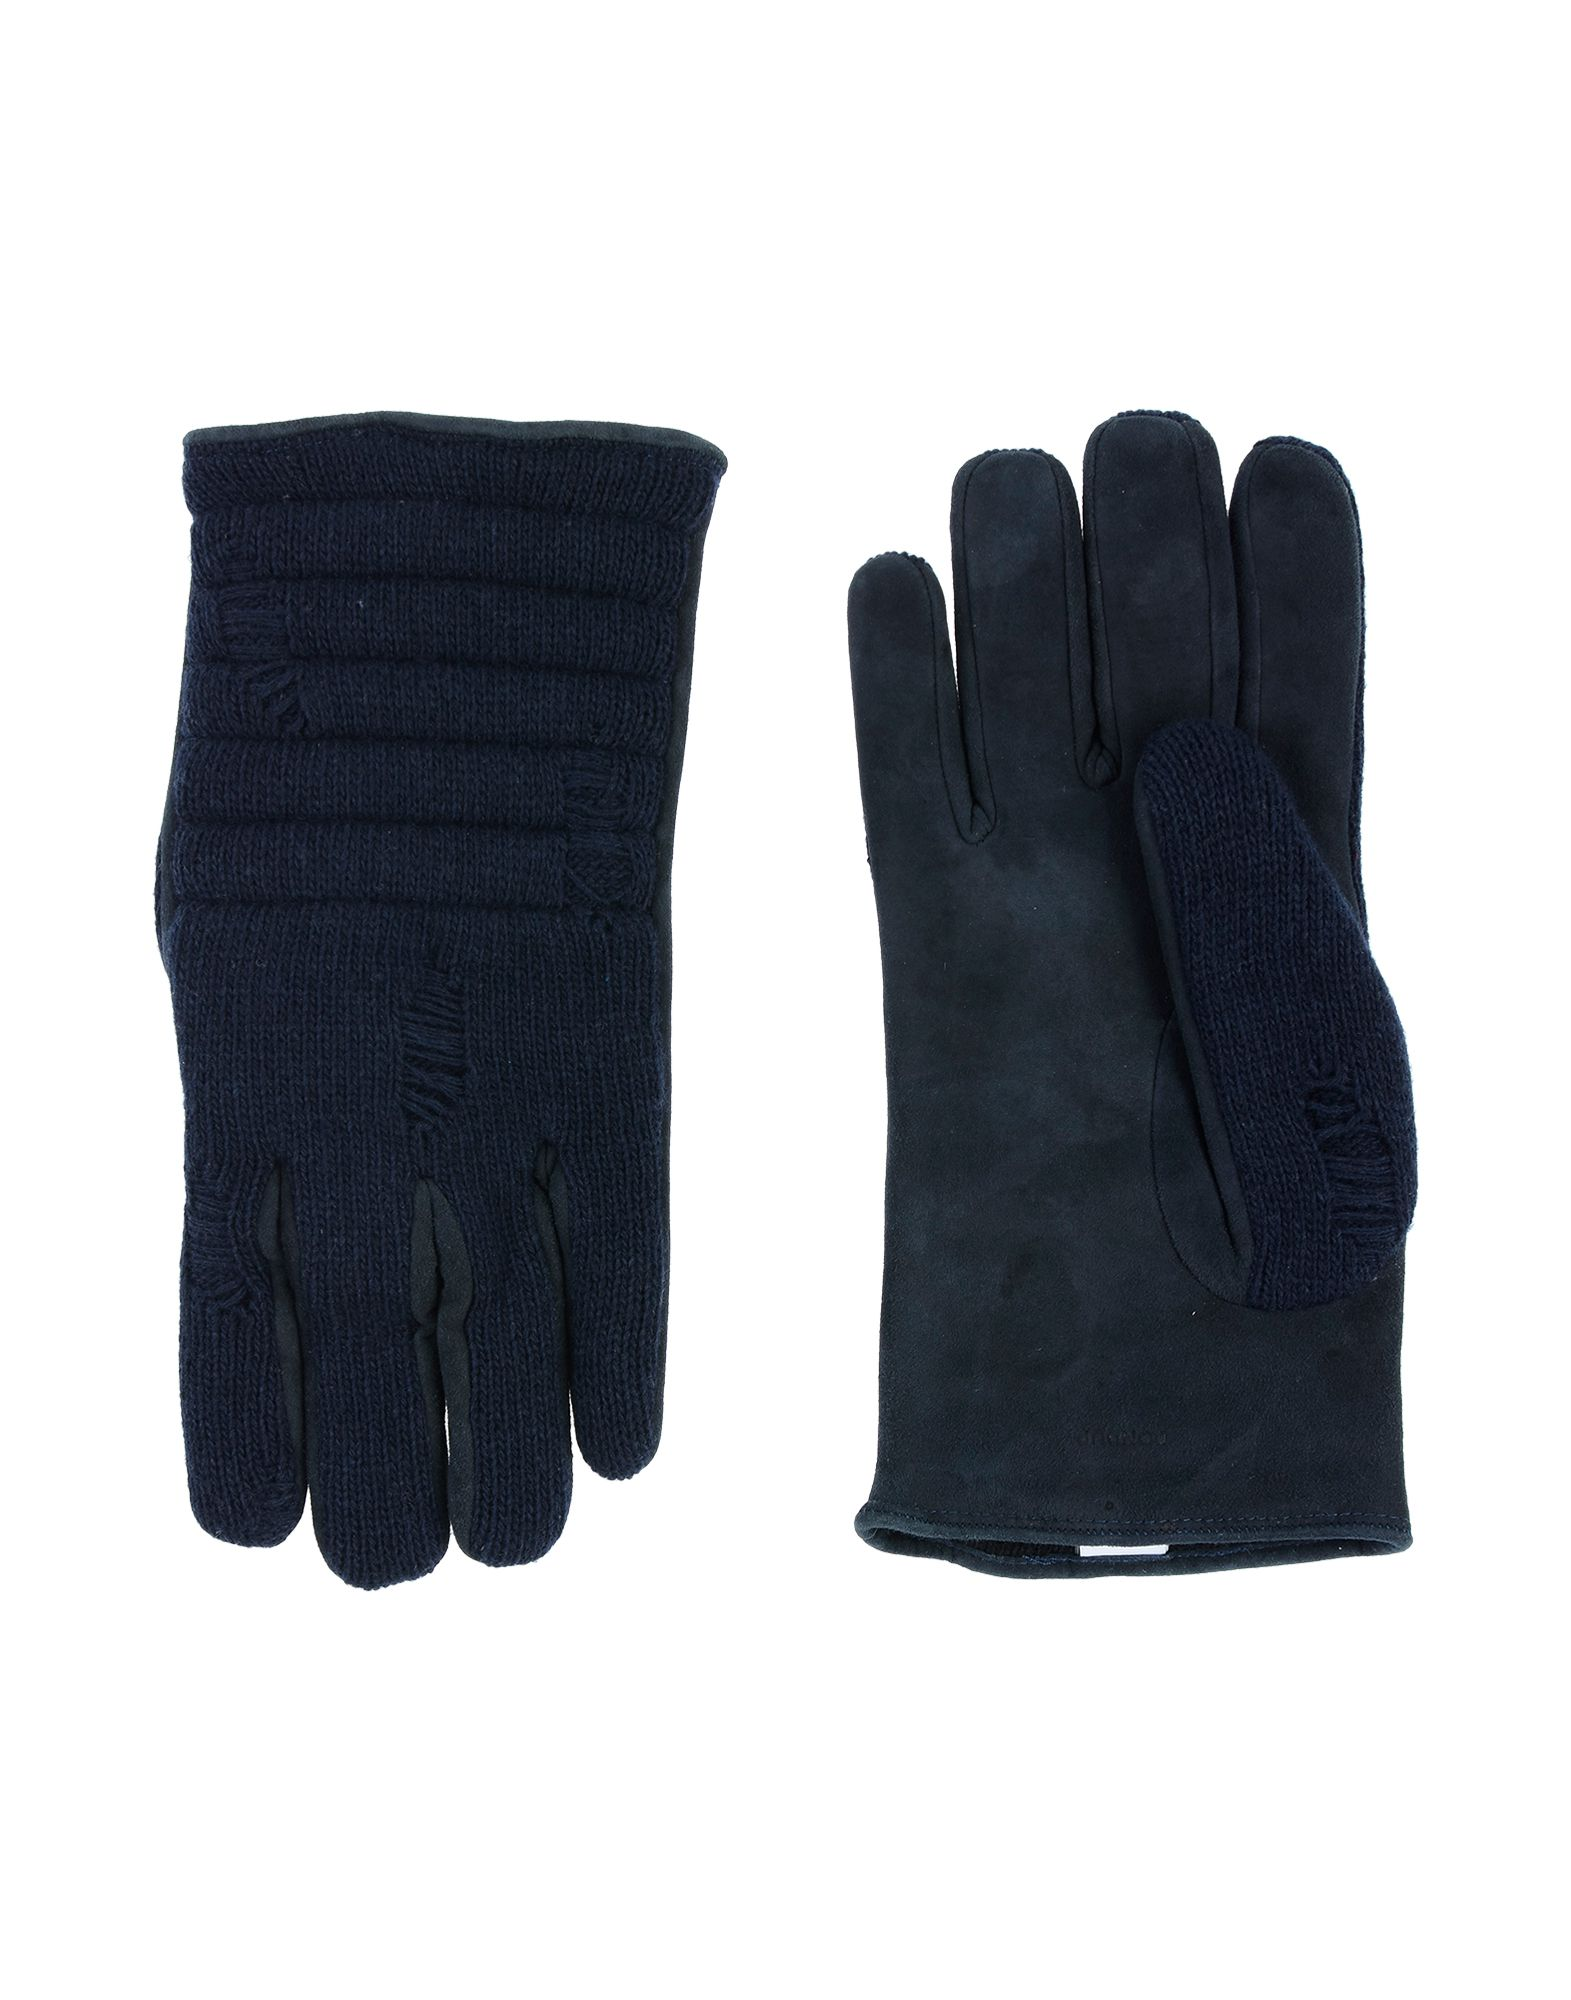 DONDUP Gloves. baize, knitted, no appliqués, suede effect, solid color, lightweight sweater, fully lined, contains non-textile parts of animal origin. 50% Soft Leather, 22% Wool, 13% Polyamide, 13% Viscose, 2% Cashmere